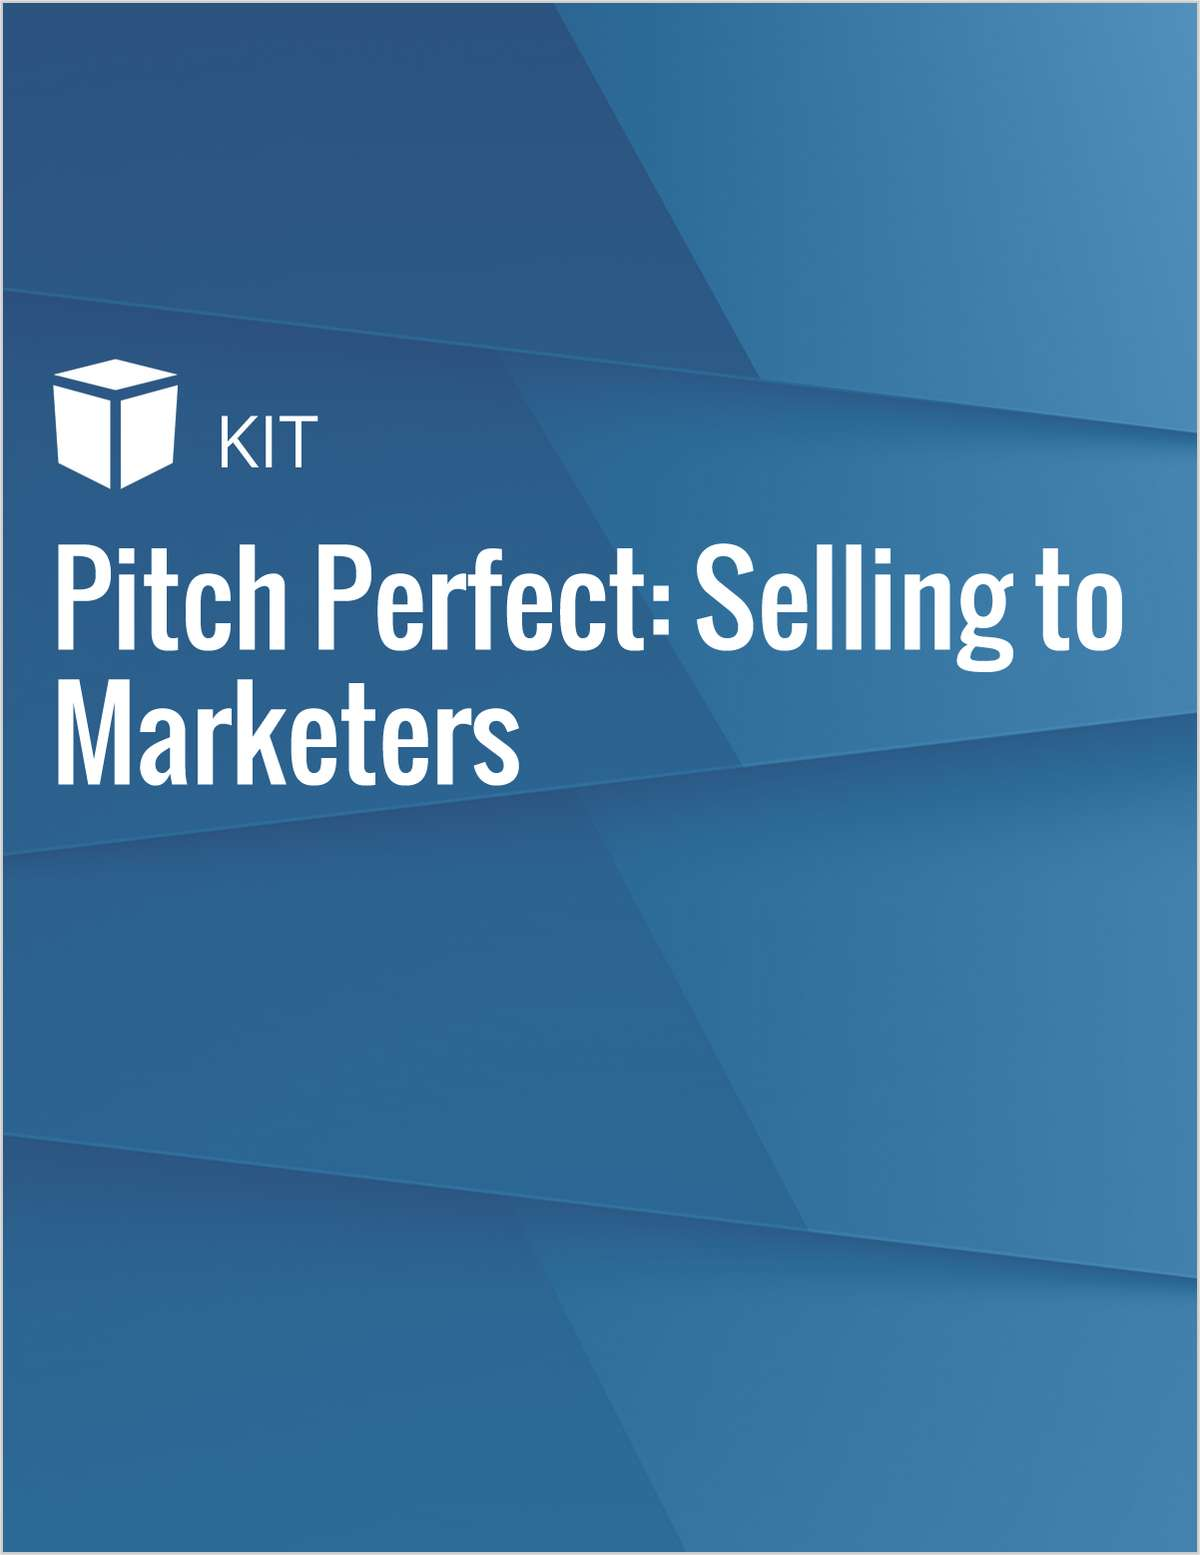 Pitch Perfect: Selling to Marketers